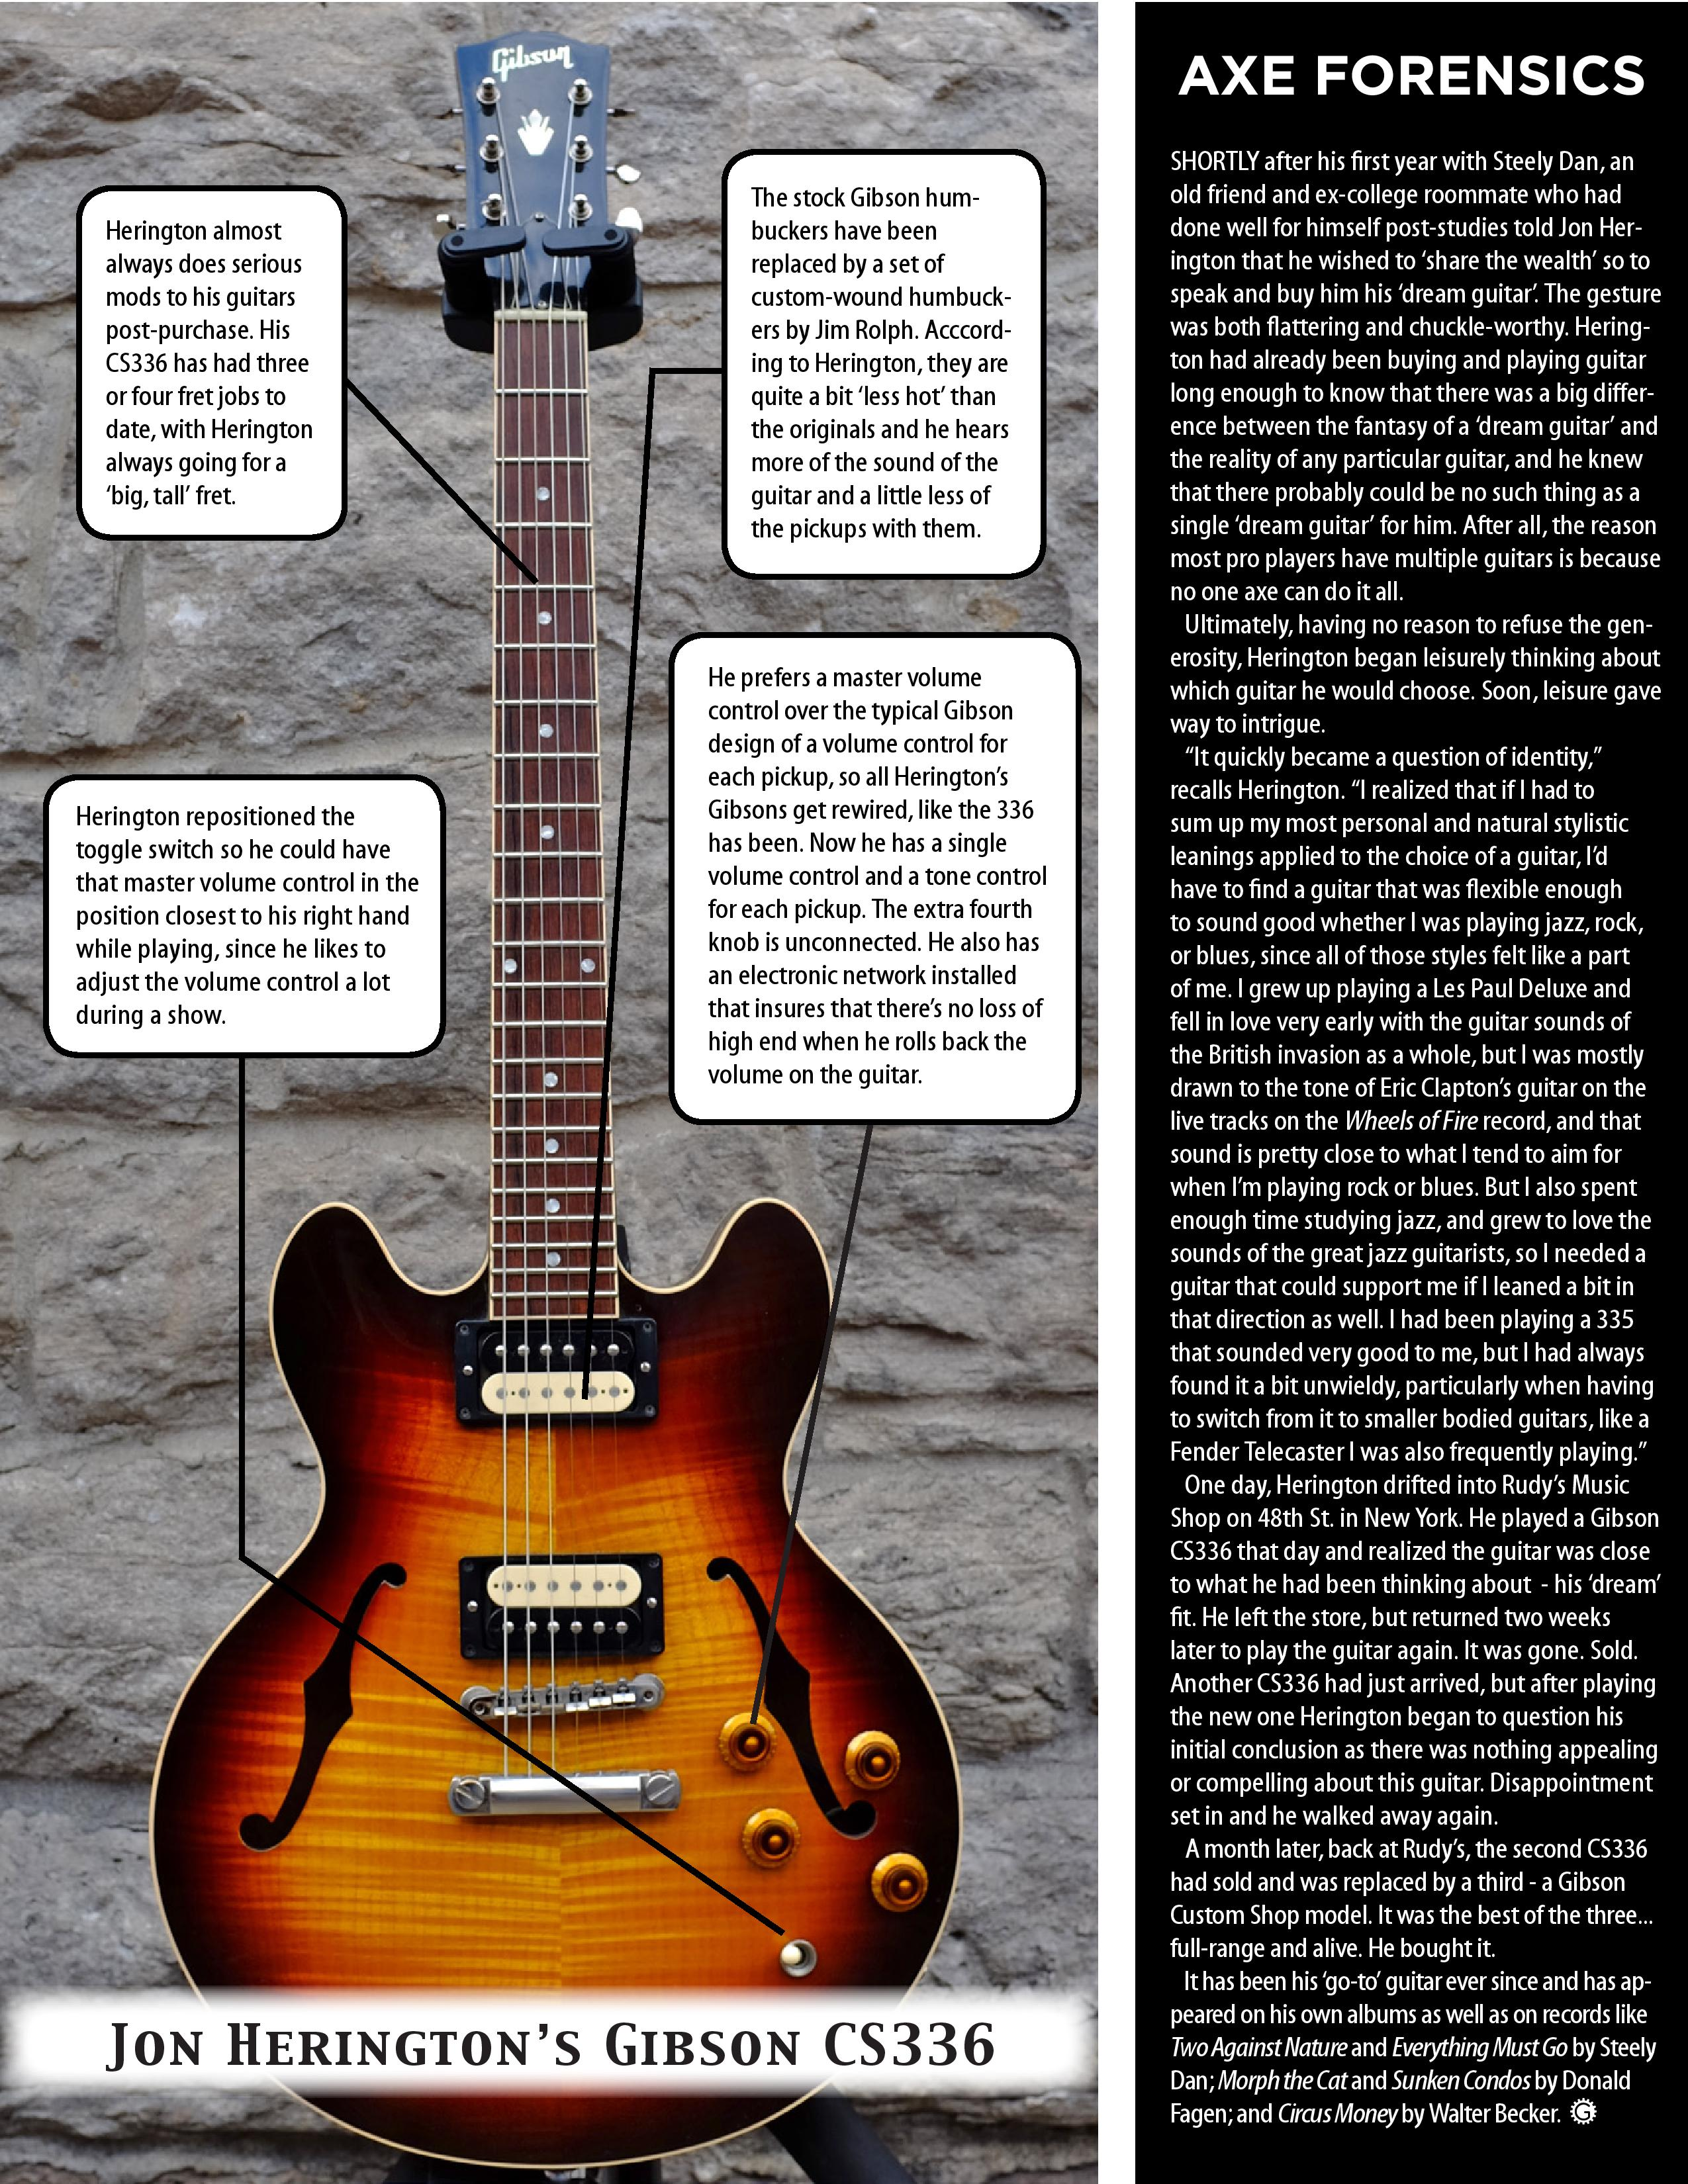 I ALSO USE AND ENJOYa Collings 290 DC electric guitar with mini humbuckers Ernie Ball Classic Pure Nickel Regular Slinky strings many pedal effects by